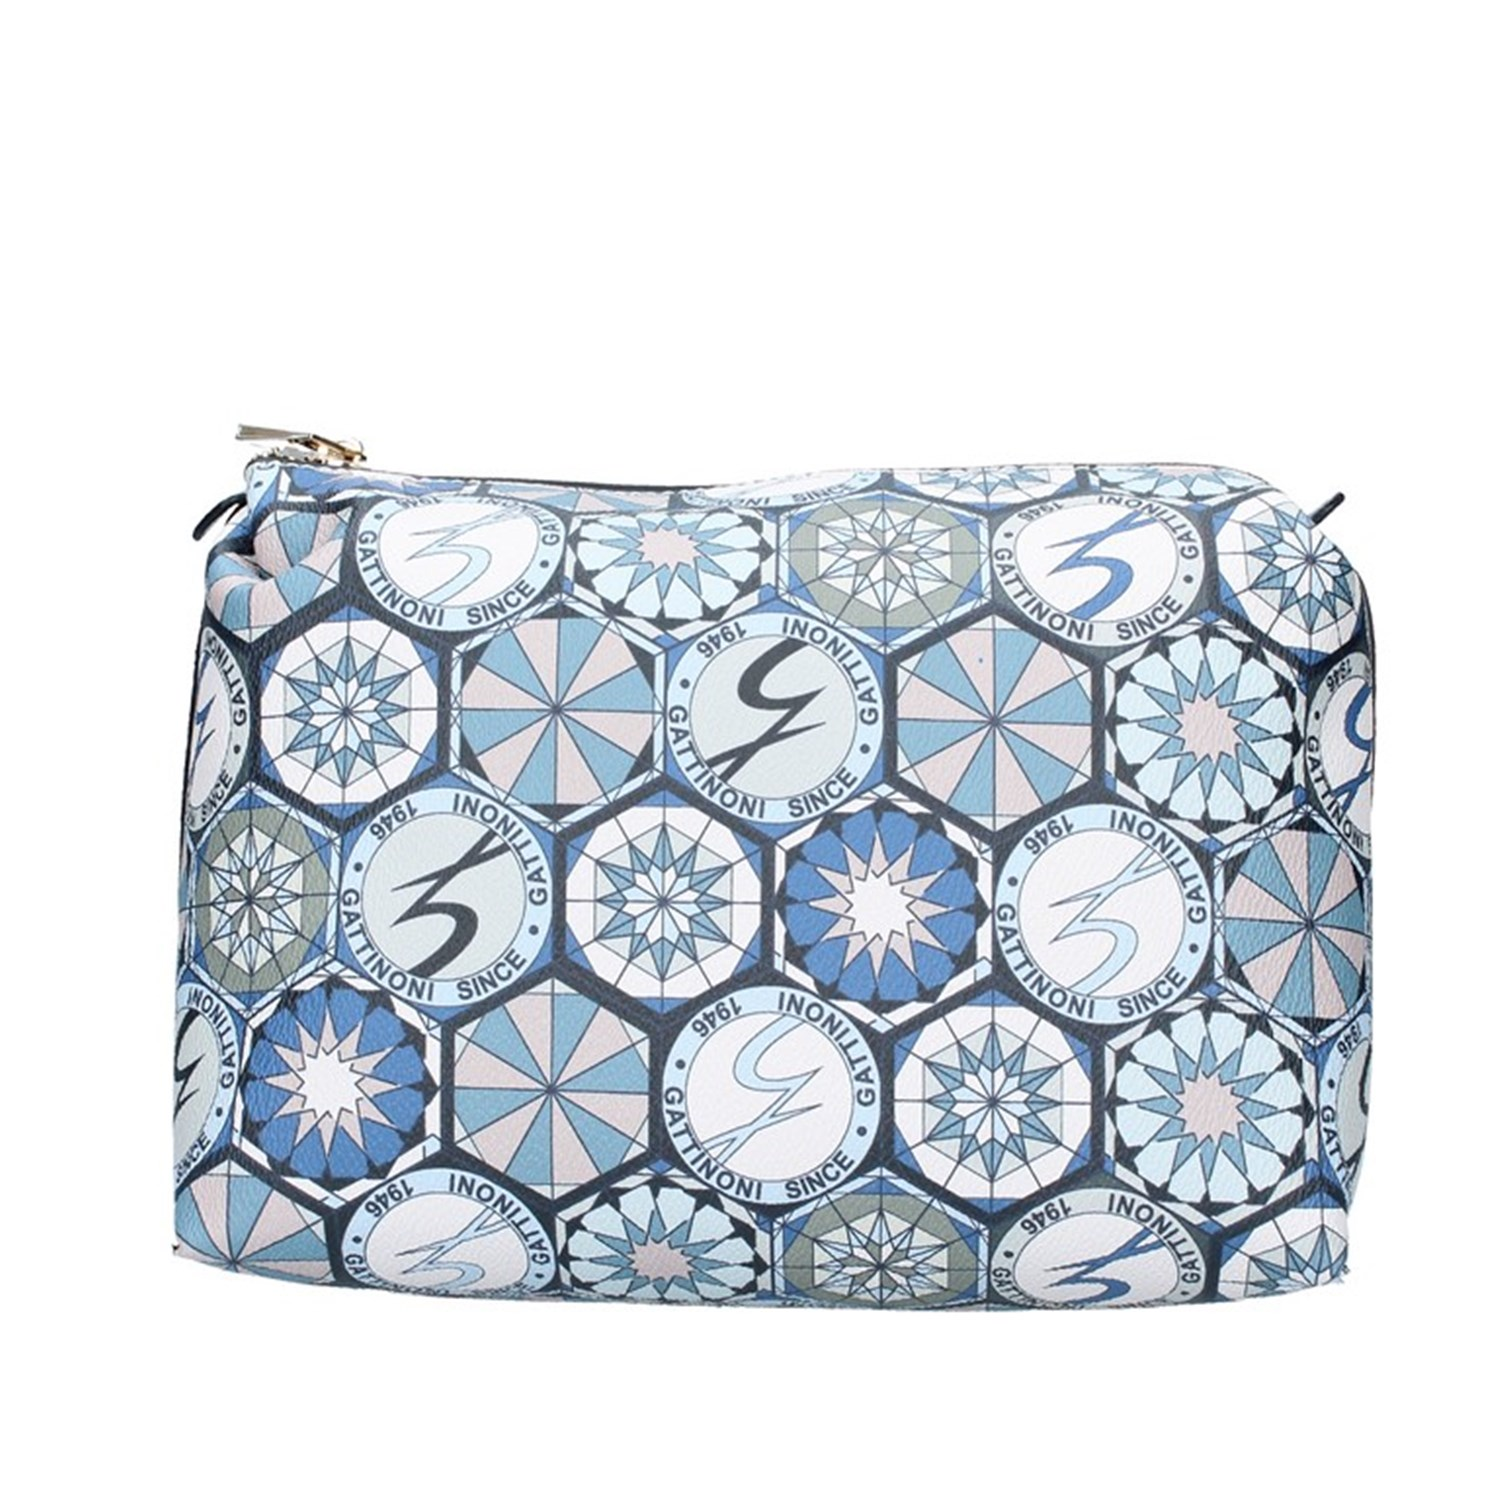 Gattinoni Roma Bags Accessories Clutch BLUE BENTD7642WP